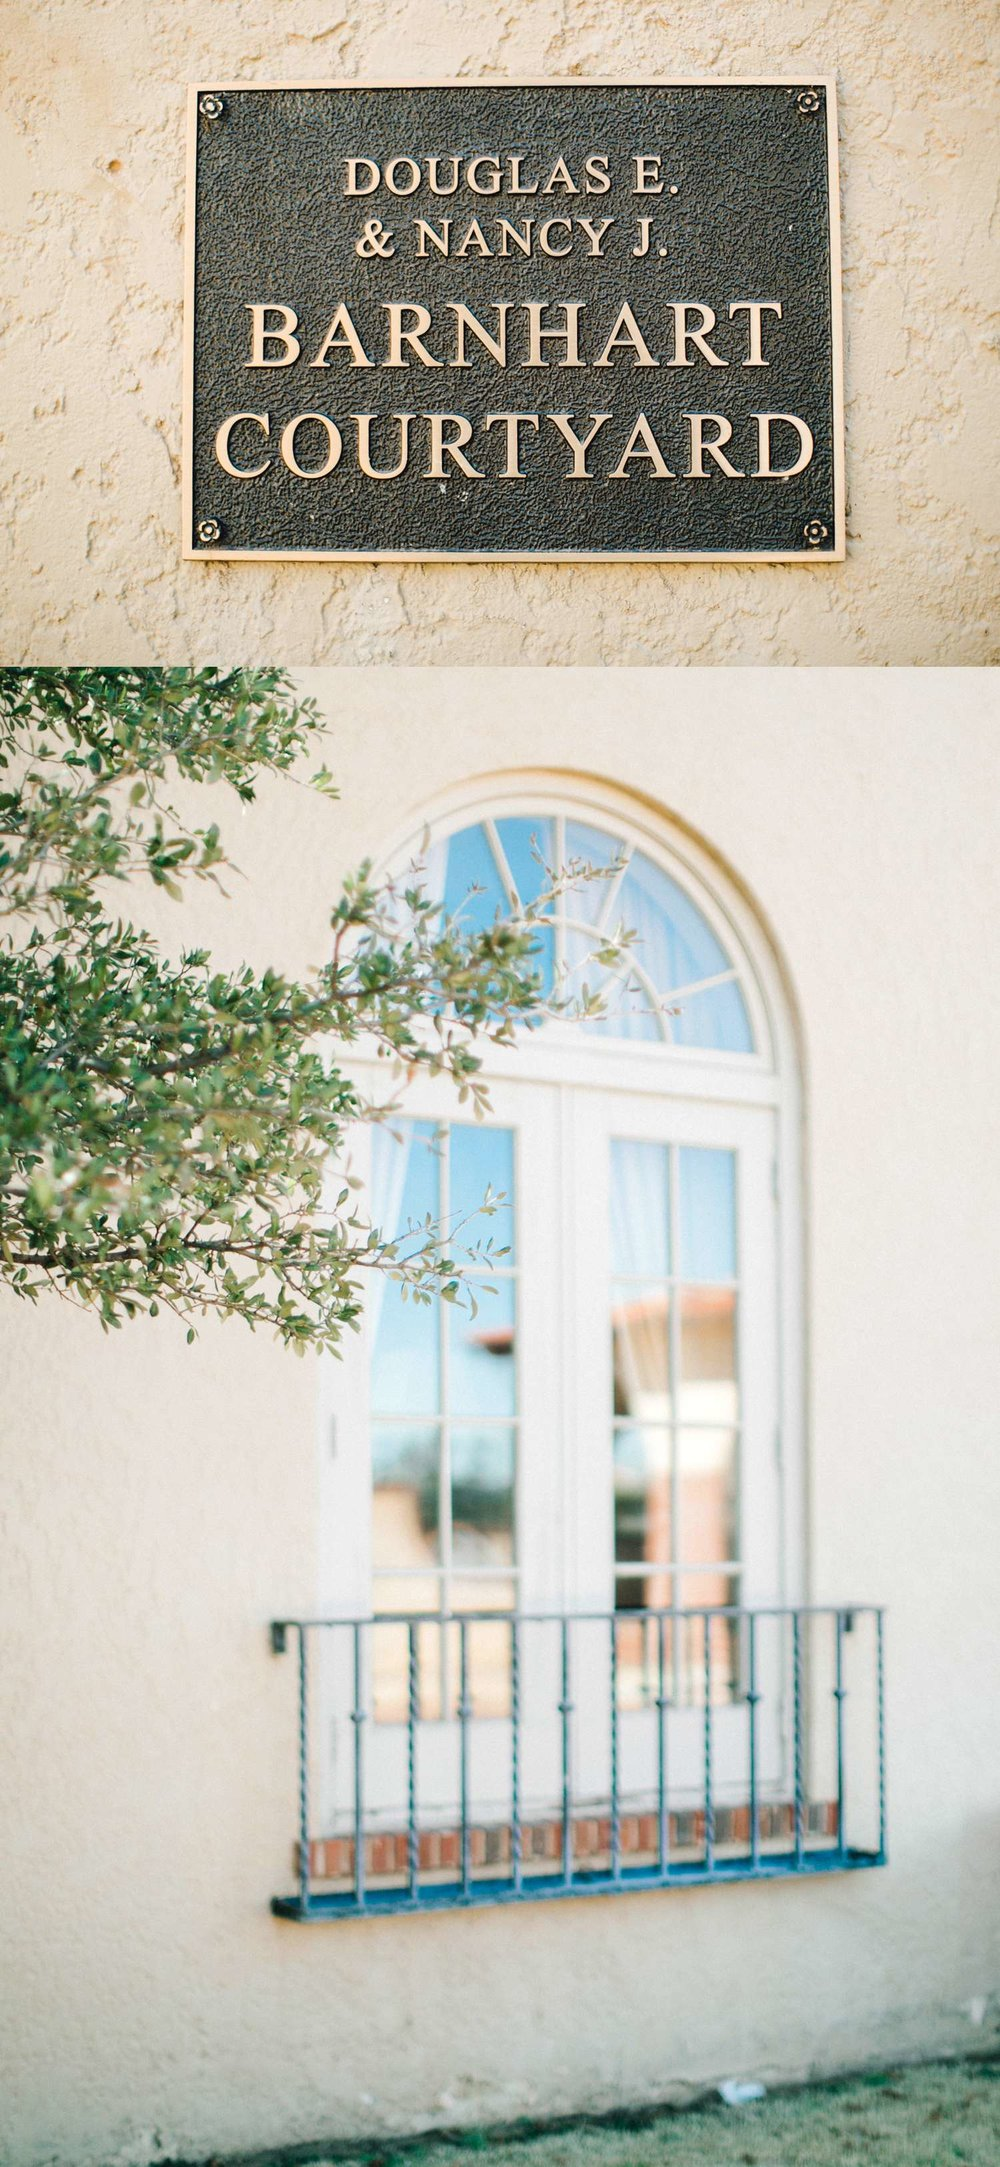 MARLEE+LLOYD+MORGAN+ALLEEJ+TEXAS+TECH+MERKET+ALUMNI+WEDDINGS+LUBBOCK+WEST+TABLE+CLASSIC+SPAIN_0200.jpg